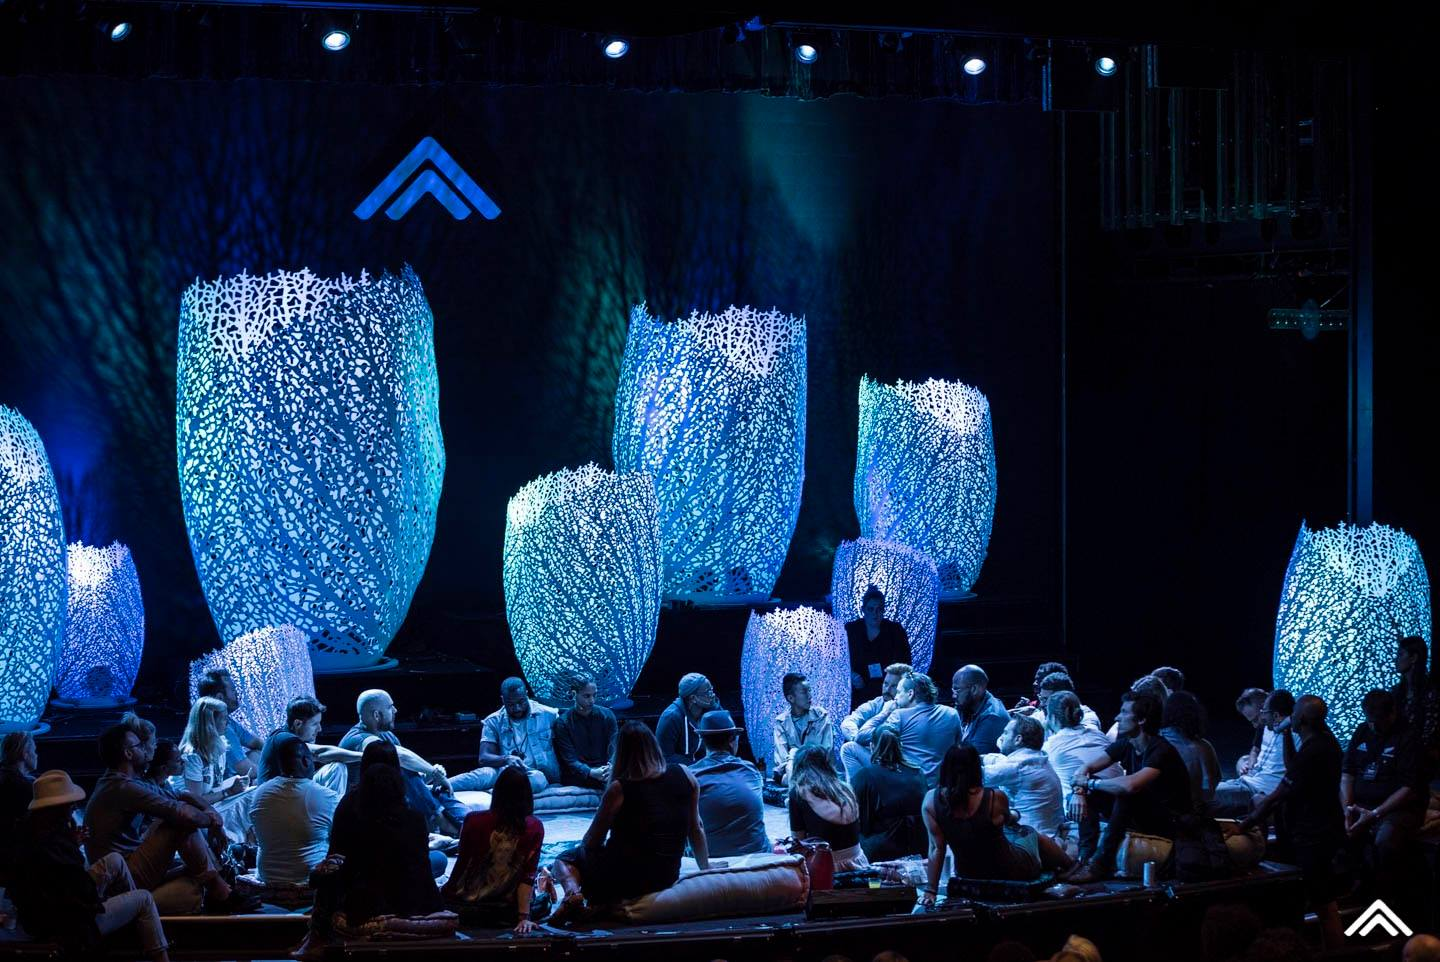 Coral-inspired installation for Summit At Sea